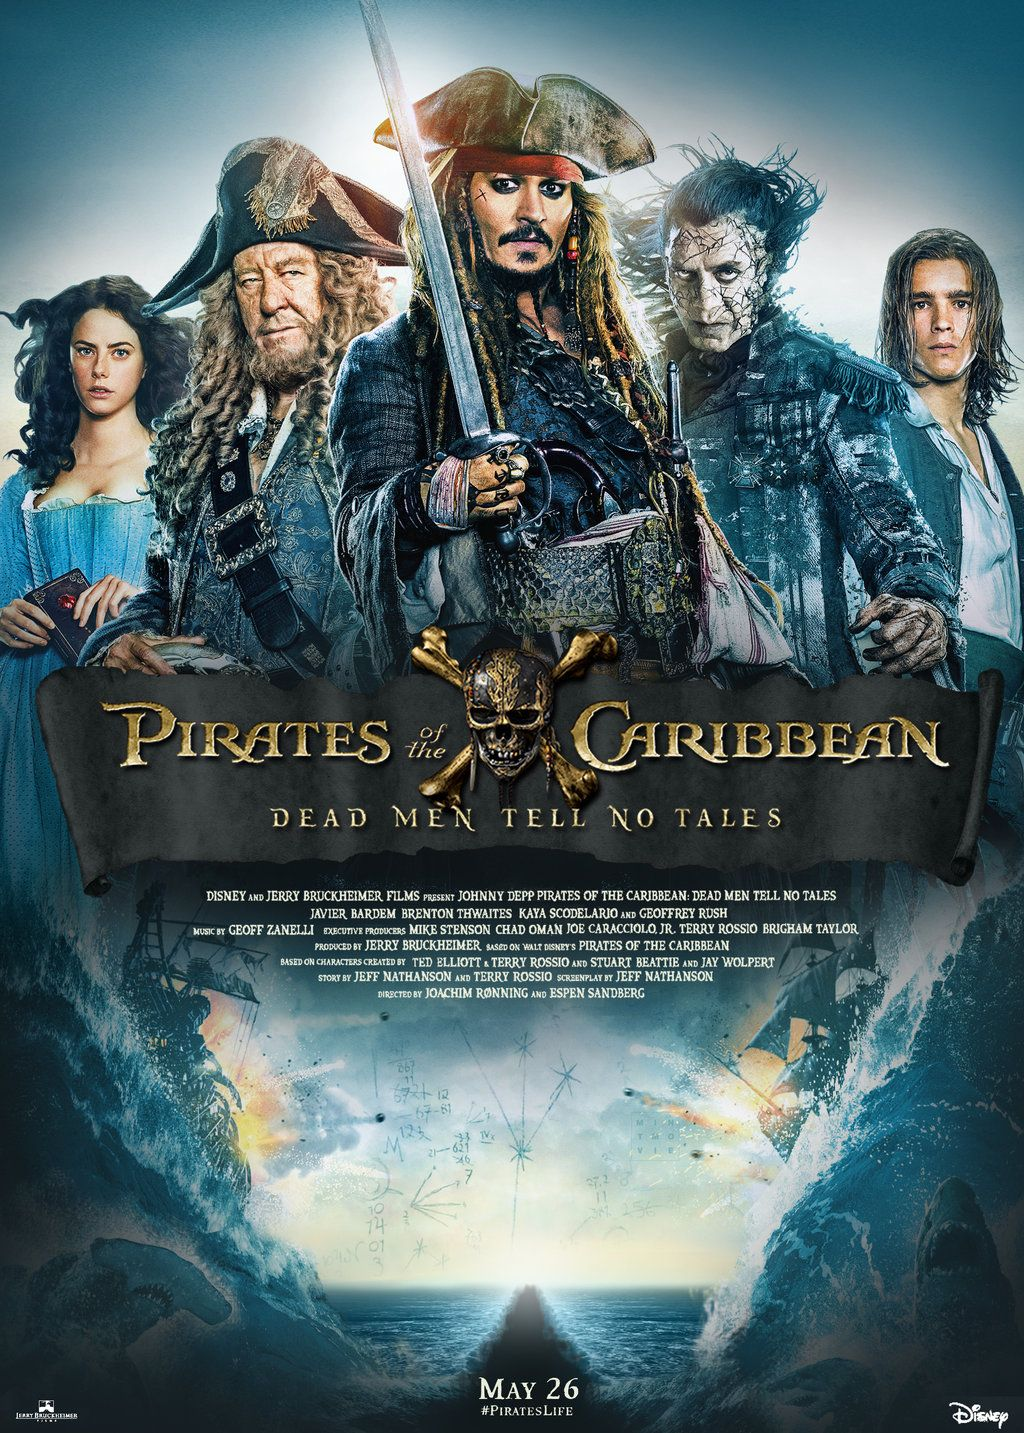 pirates of the caribbean 3 movie free download